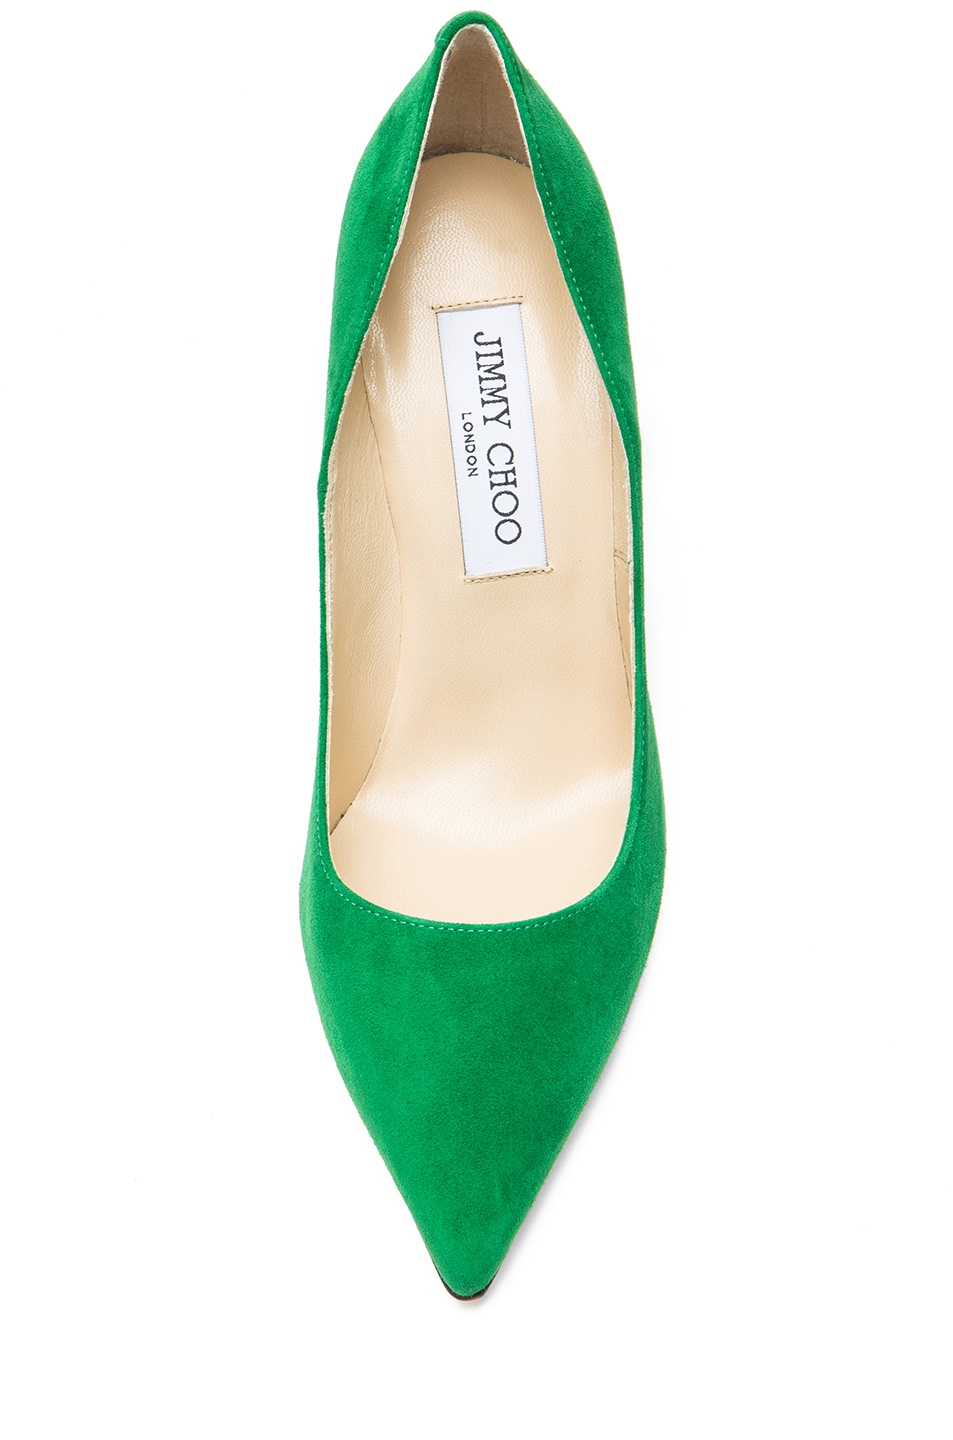 45b443140d1 Image 4 of Jimmy Choo Abel Suede Pointed Pump in Emerald